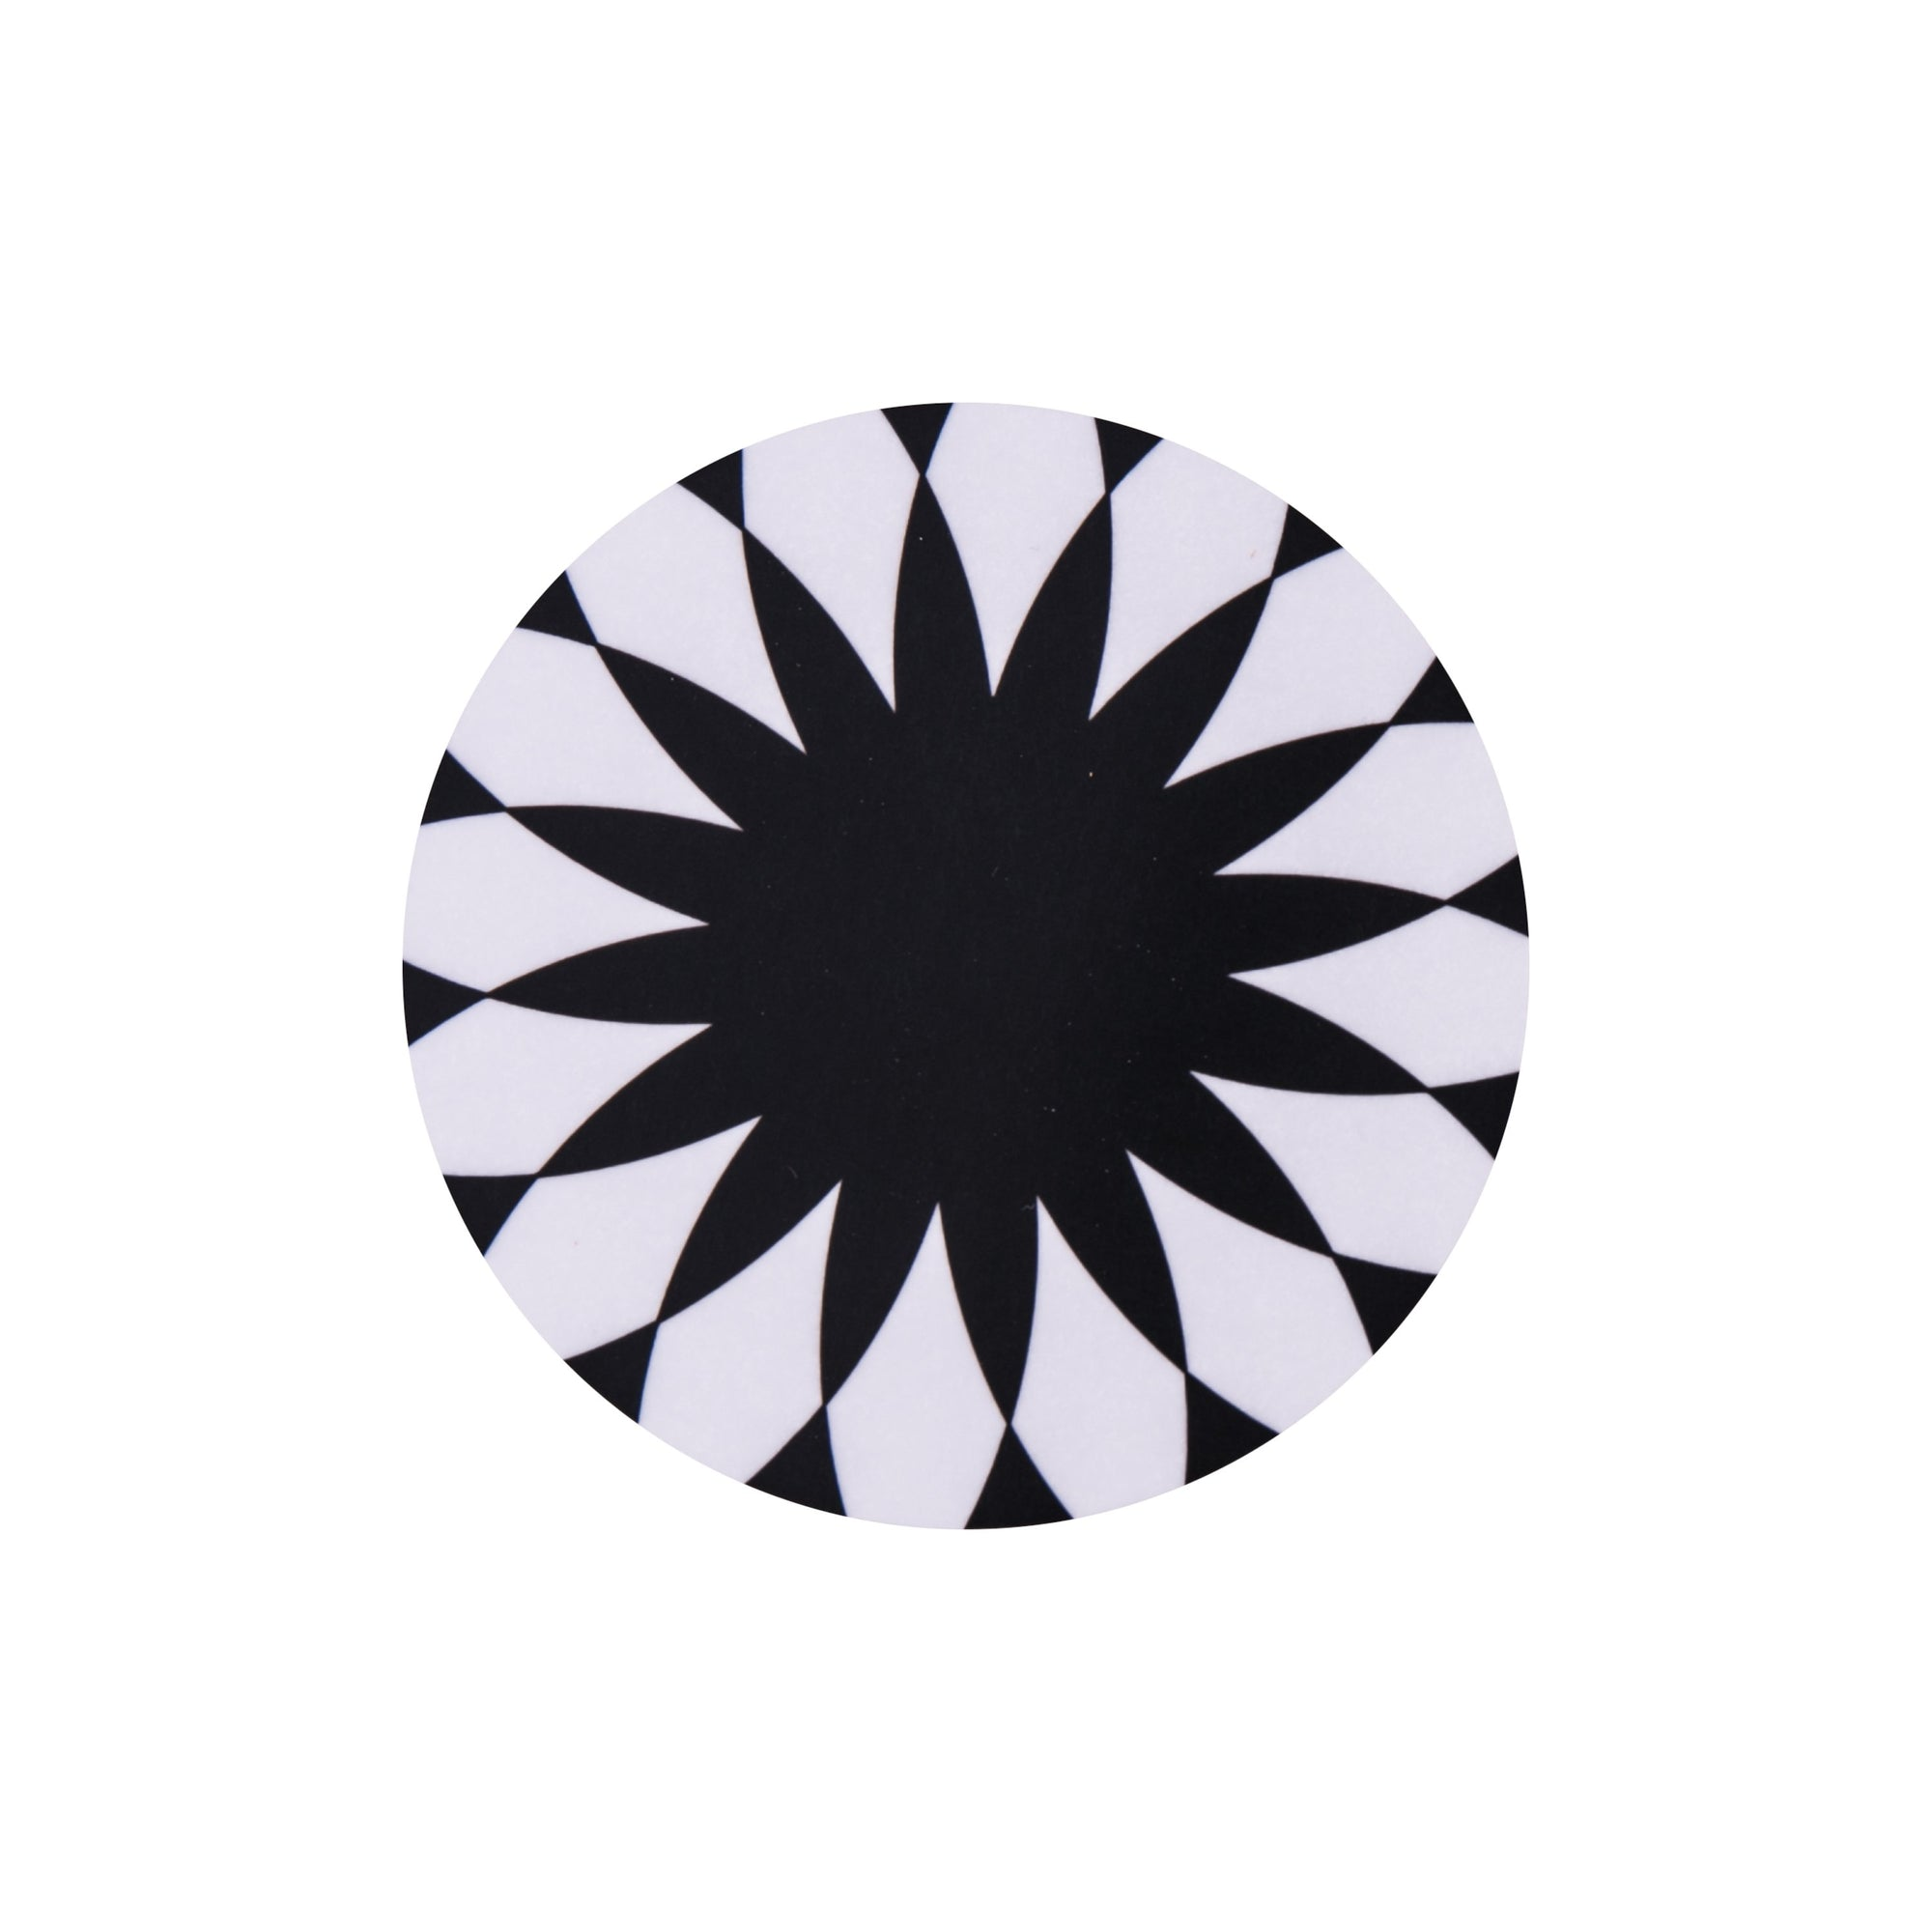 Star Burst Round Coaster - MAiK sustainably sourced, ethically produced.